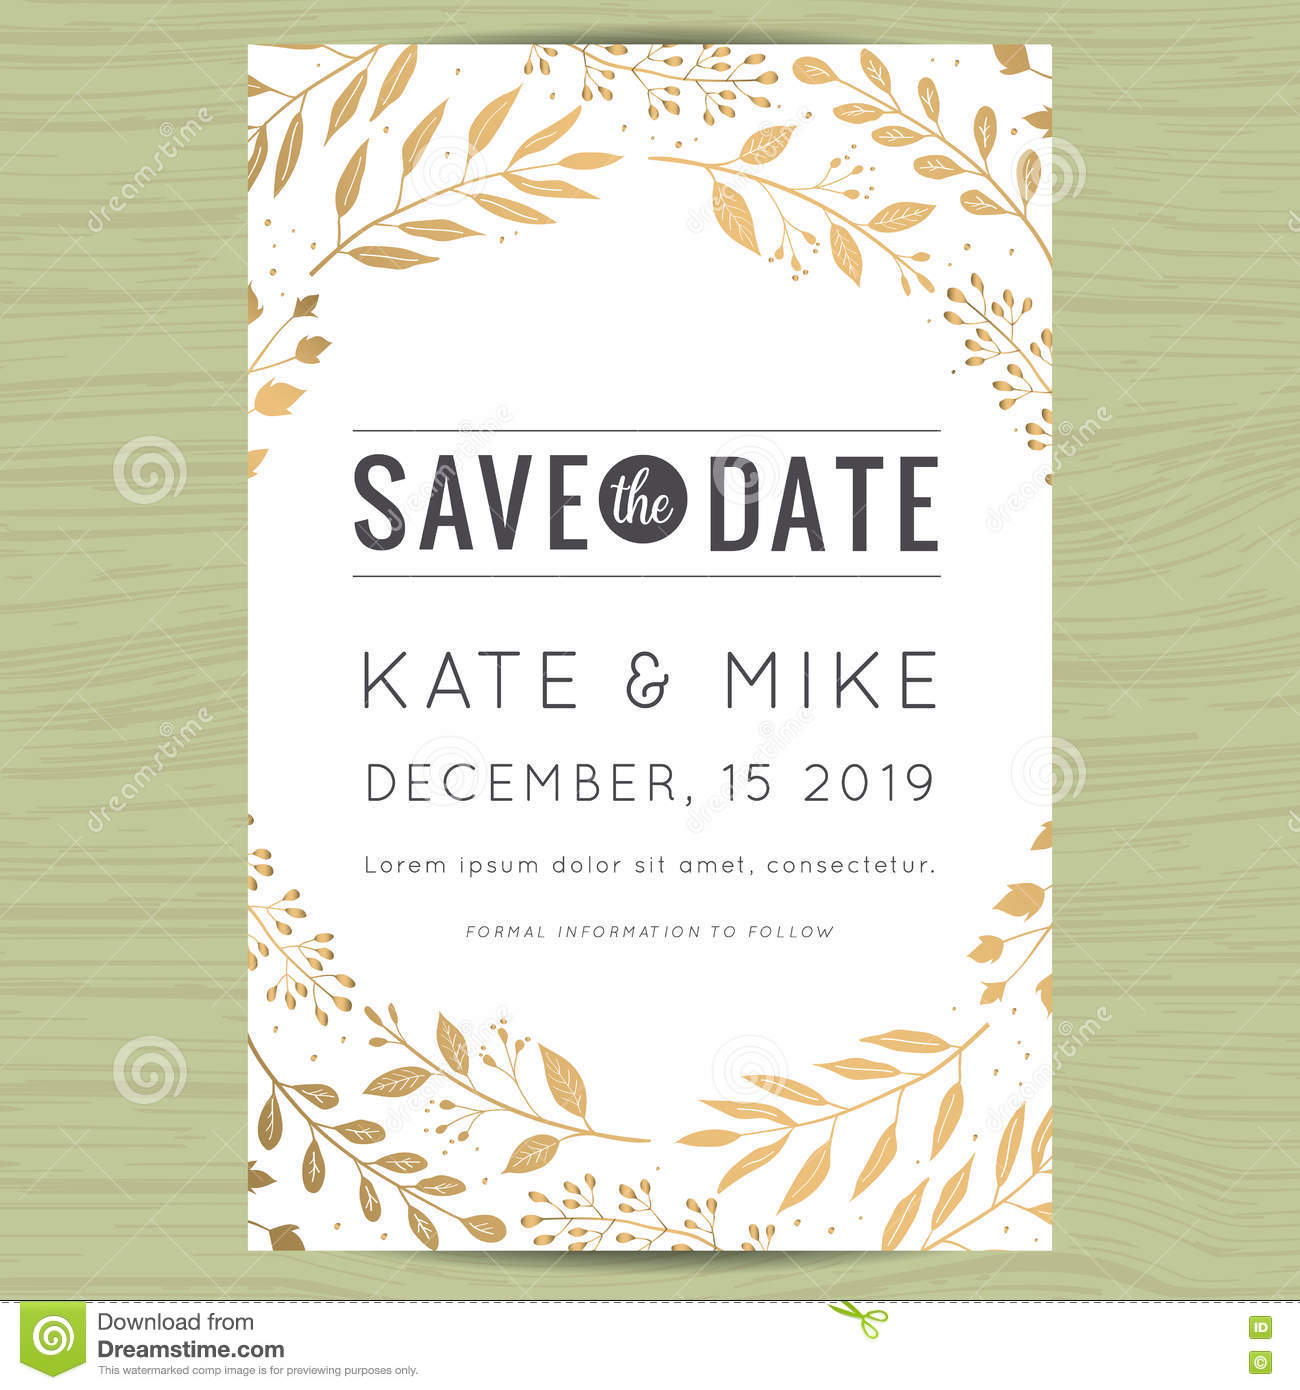 floral save the date wedding invitation template cartoon vector 55588189. Black Bedroom Furniture Sets. Home Design Ideas